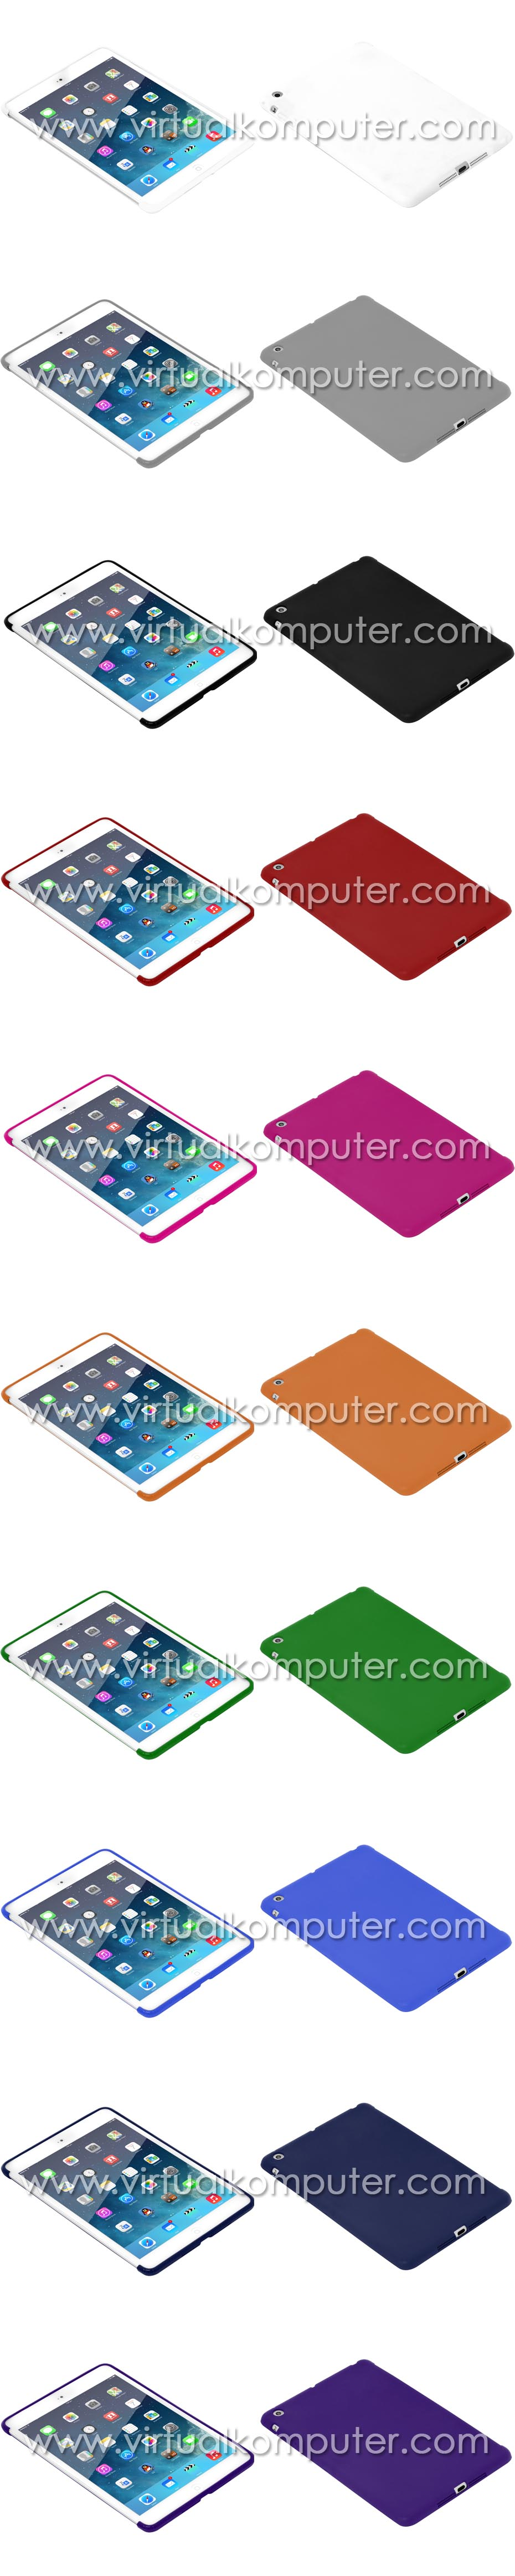 Softcase for iPad Mini Overview